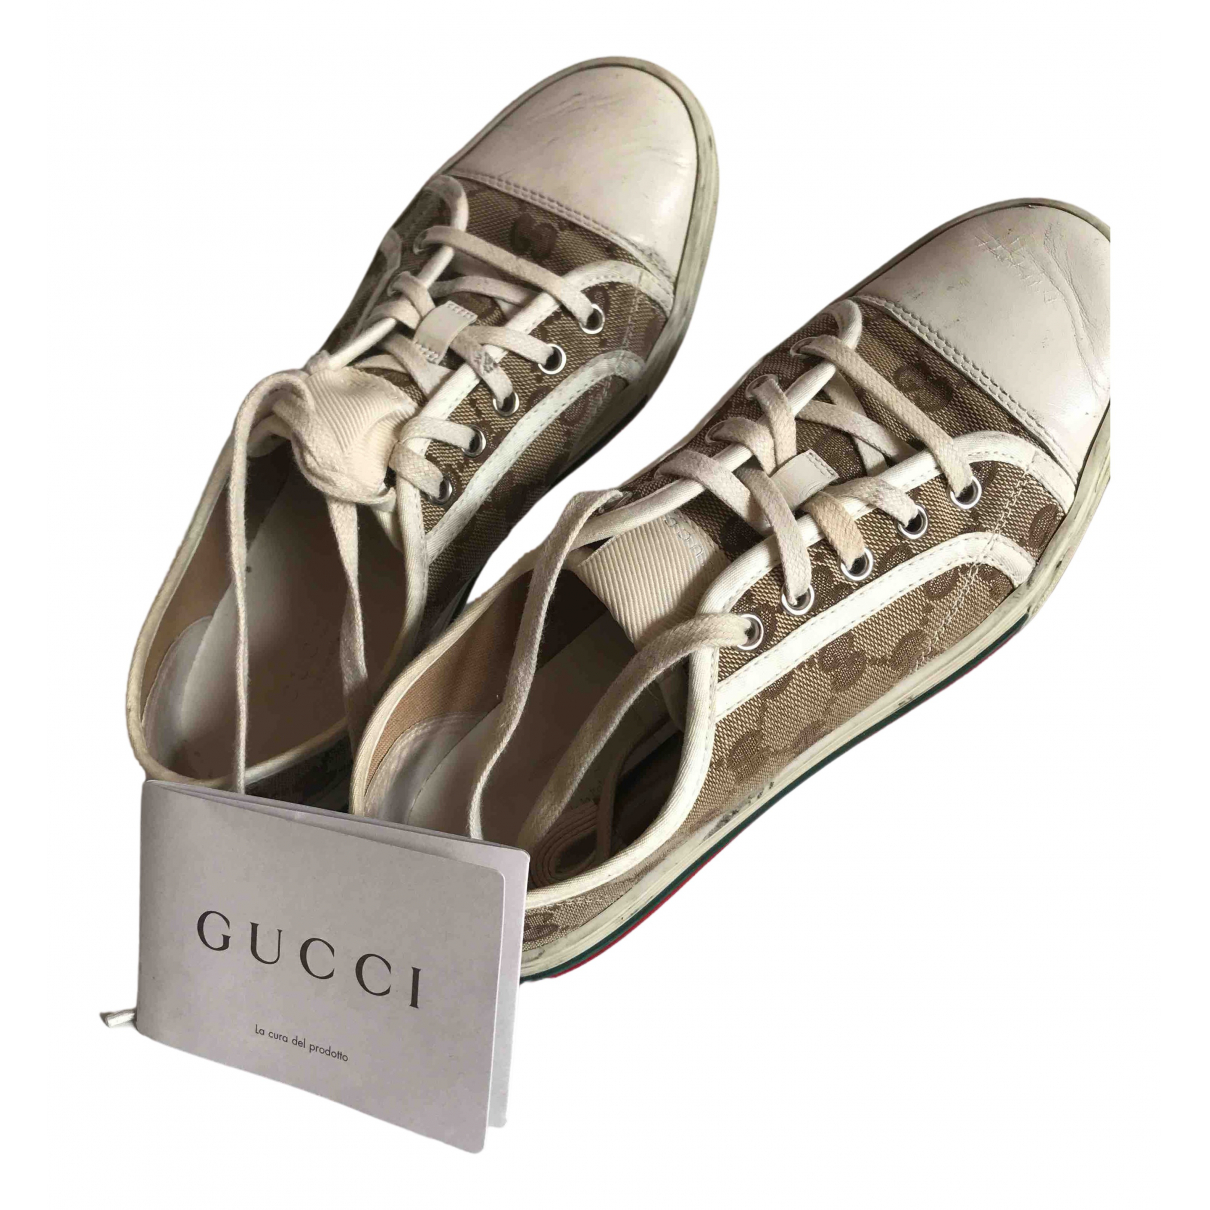 Gucci Ace Beige Leather Trainers for Women 36.5 EU